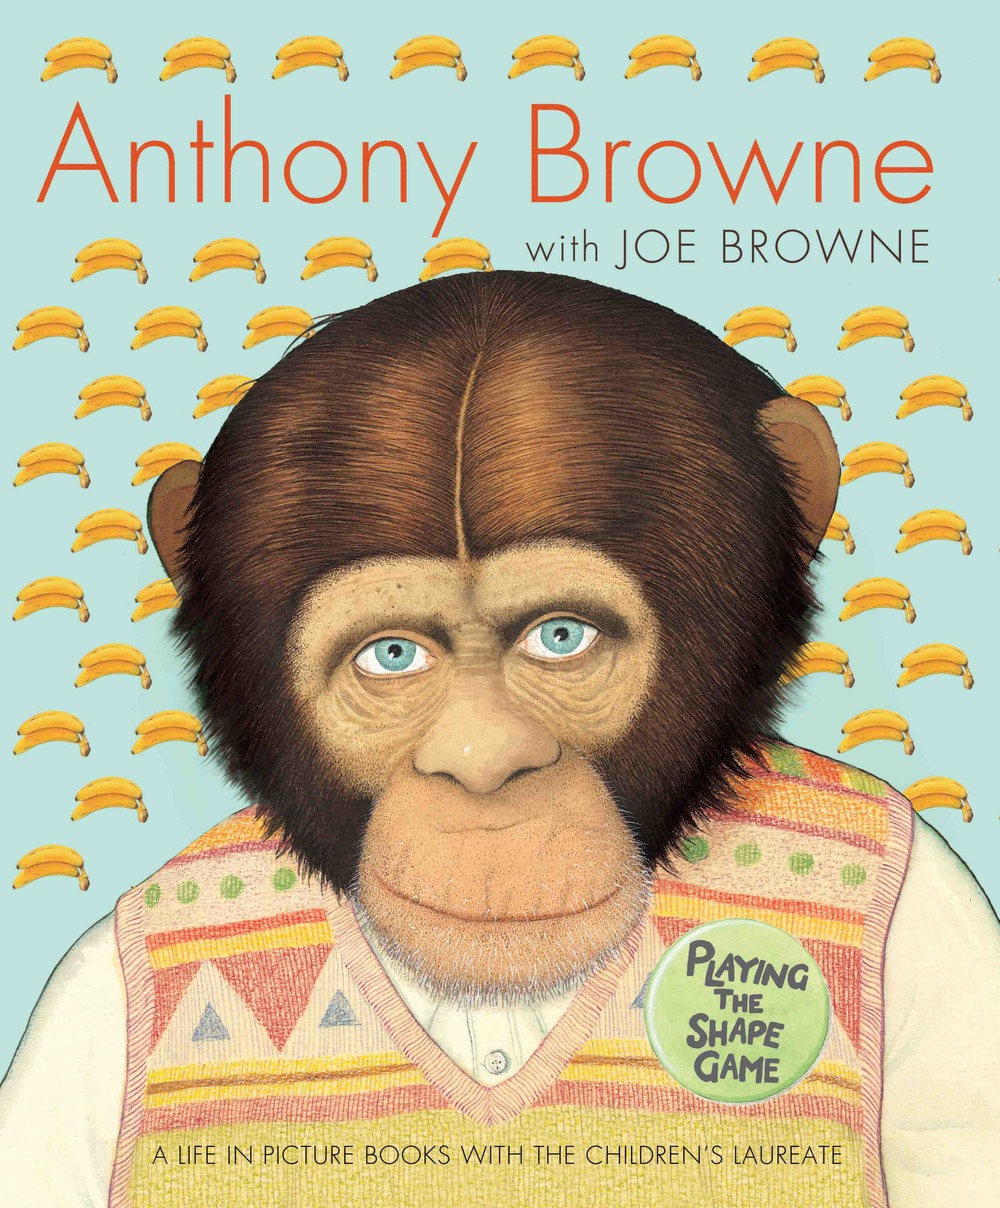 - If you want to learn more about Anthony, why not read his biography?